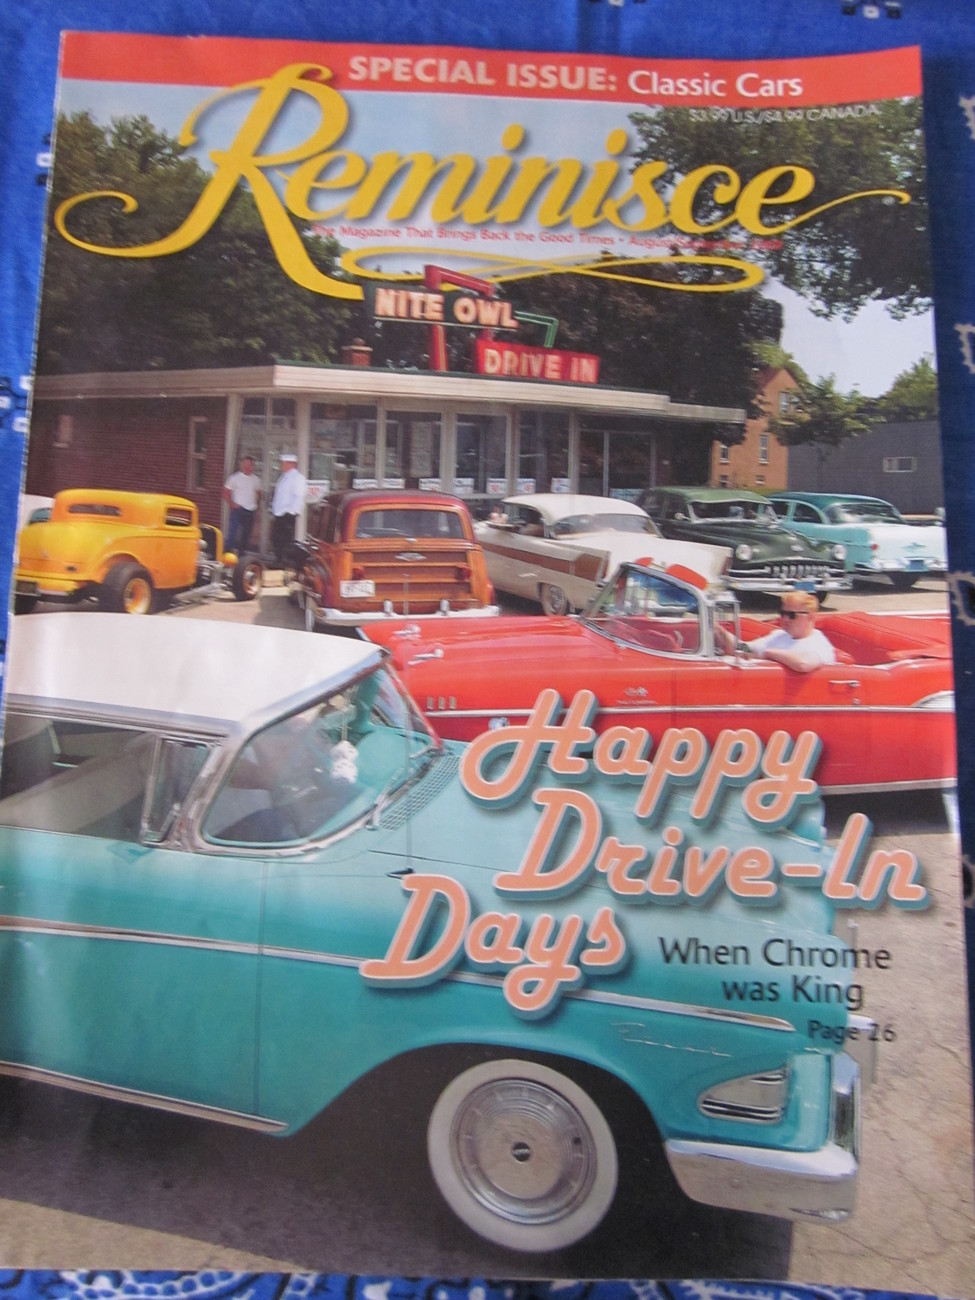 Reminisce Magazine Special Issue Classic Cars Aug / Sept 2009